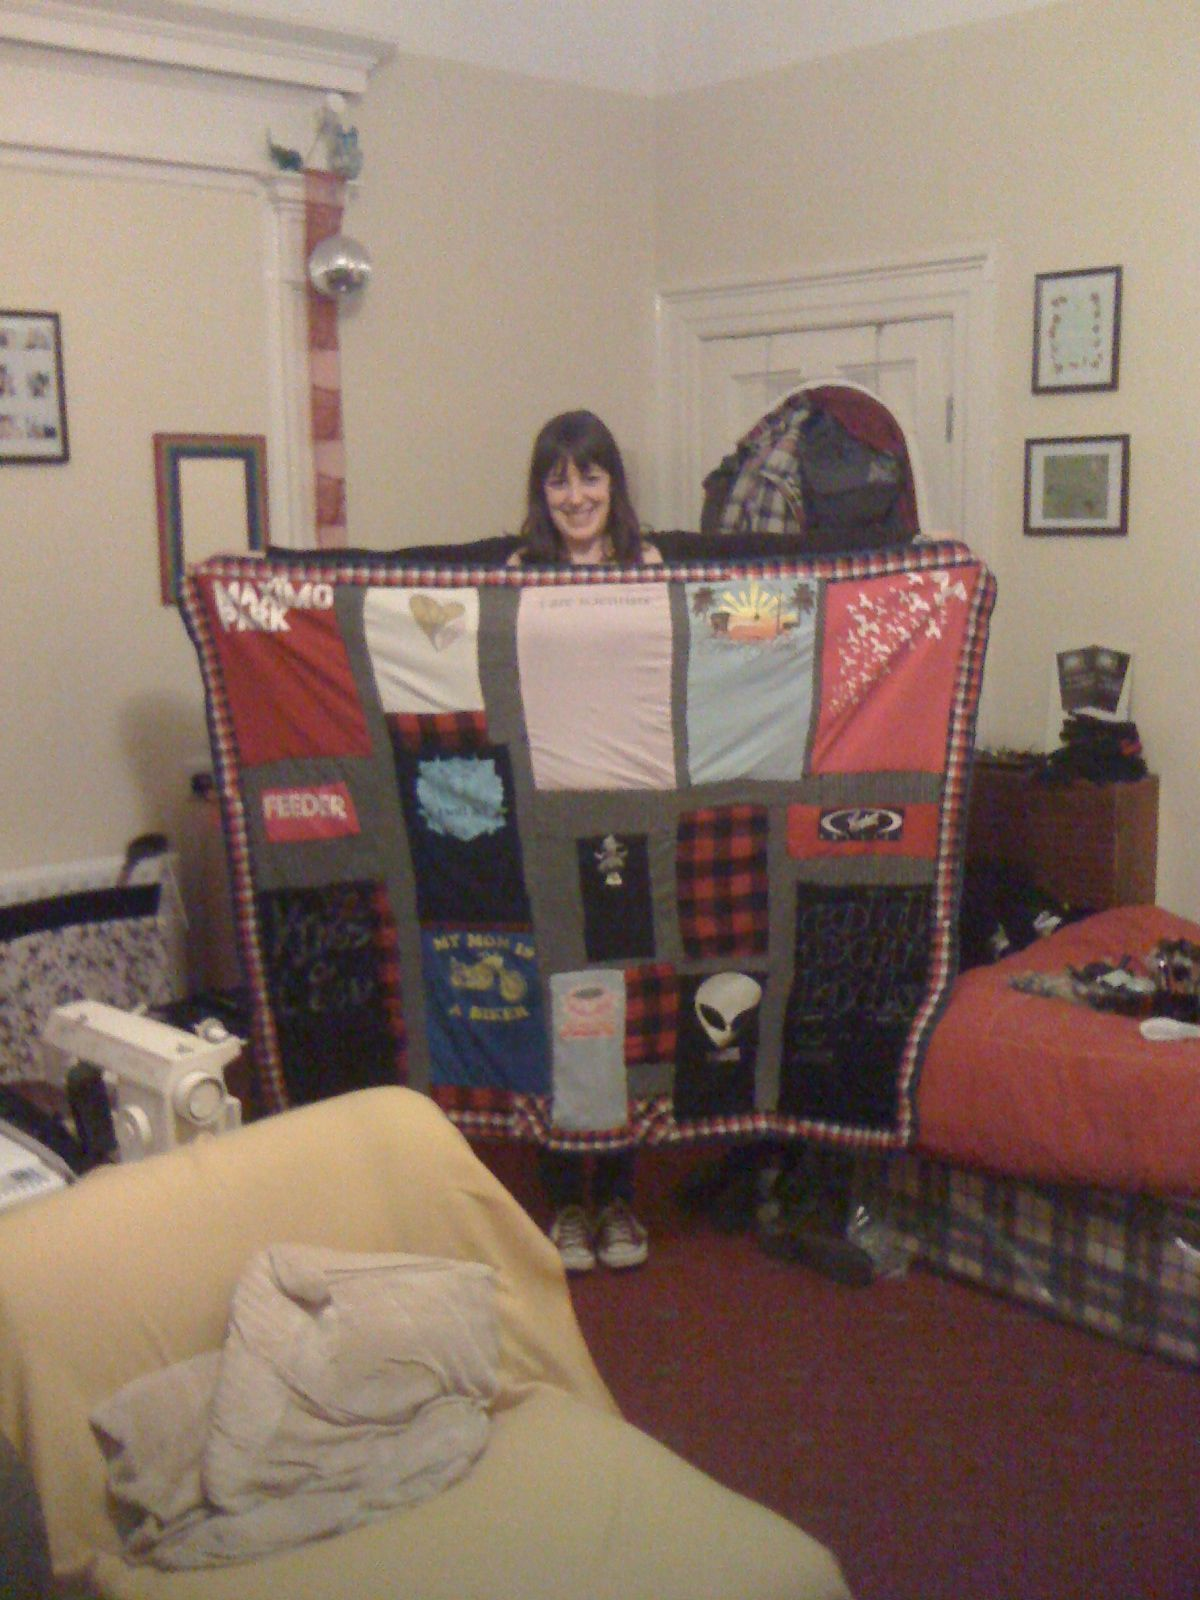 I needed something to do with a bunch of band t-shirts so I made a band quilt, I love it!